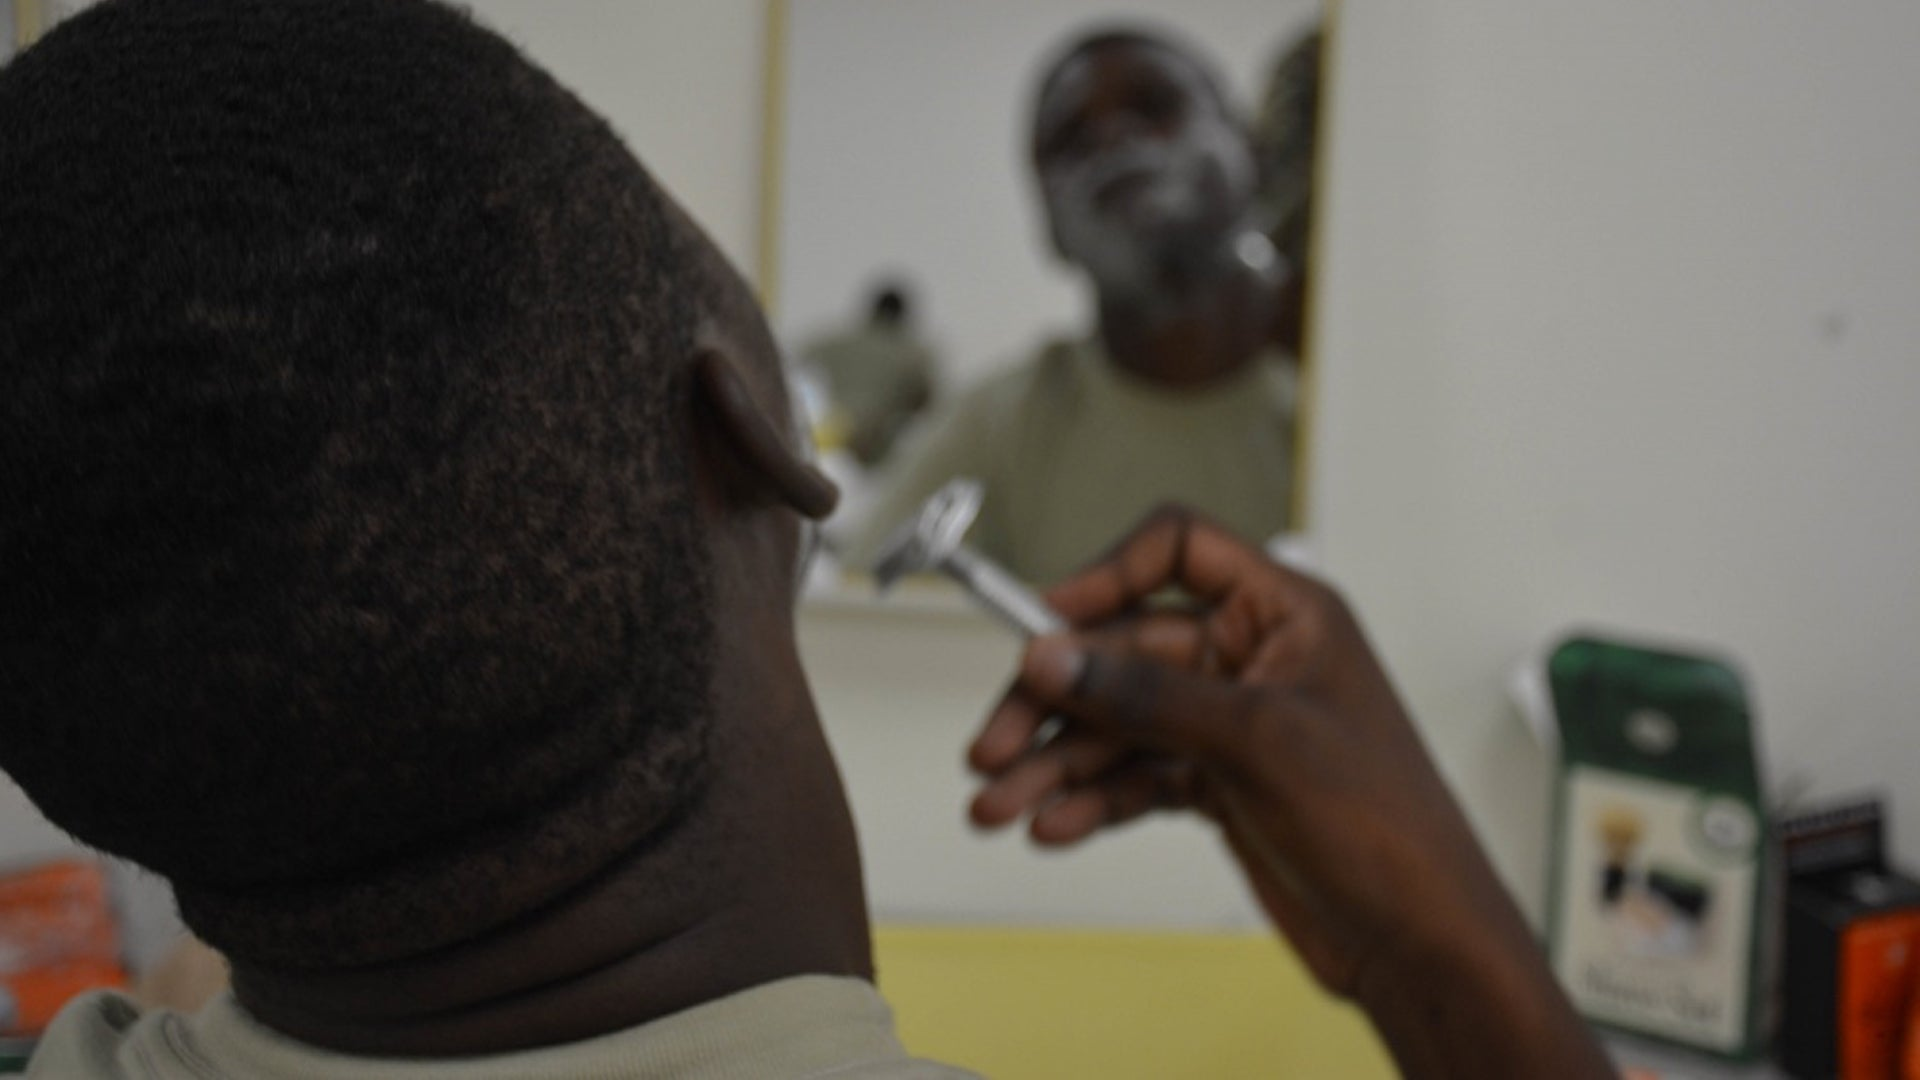 A shaving profile might be bad for your Air Force career